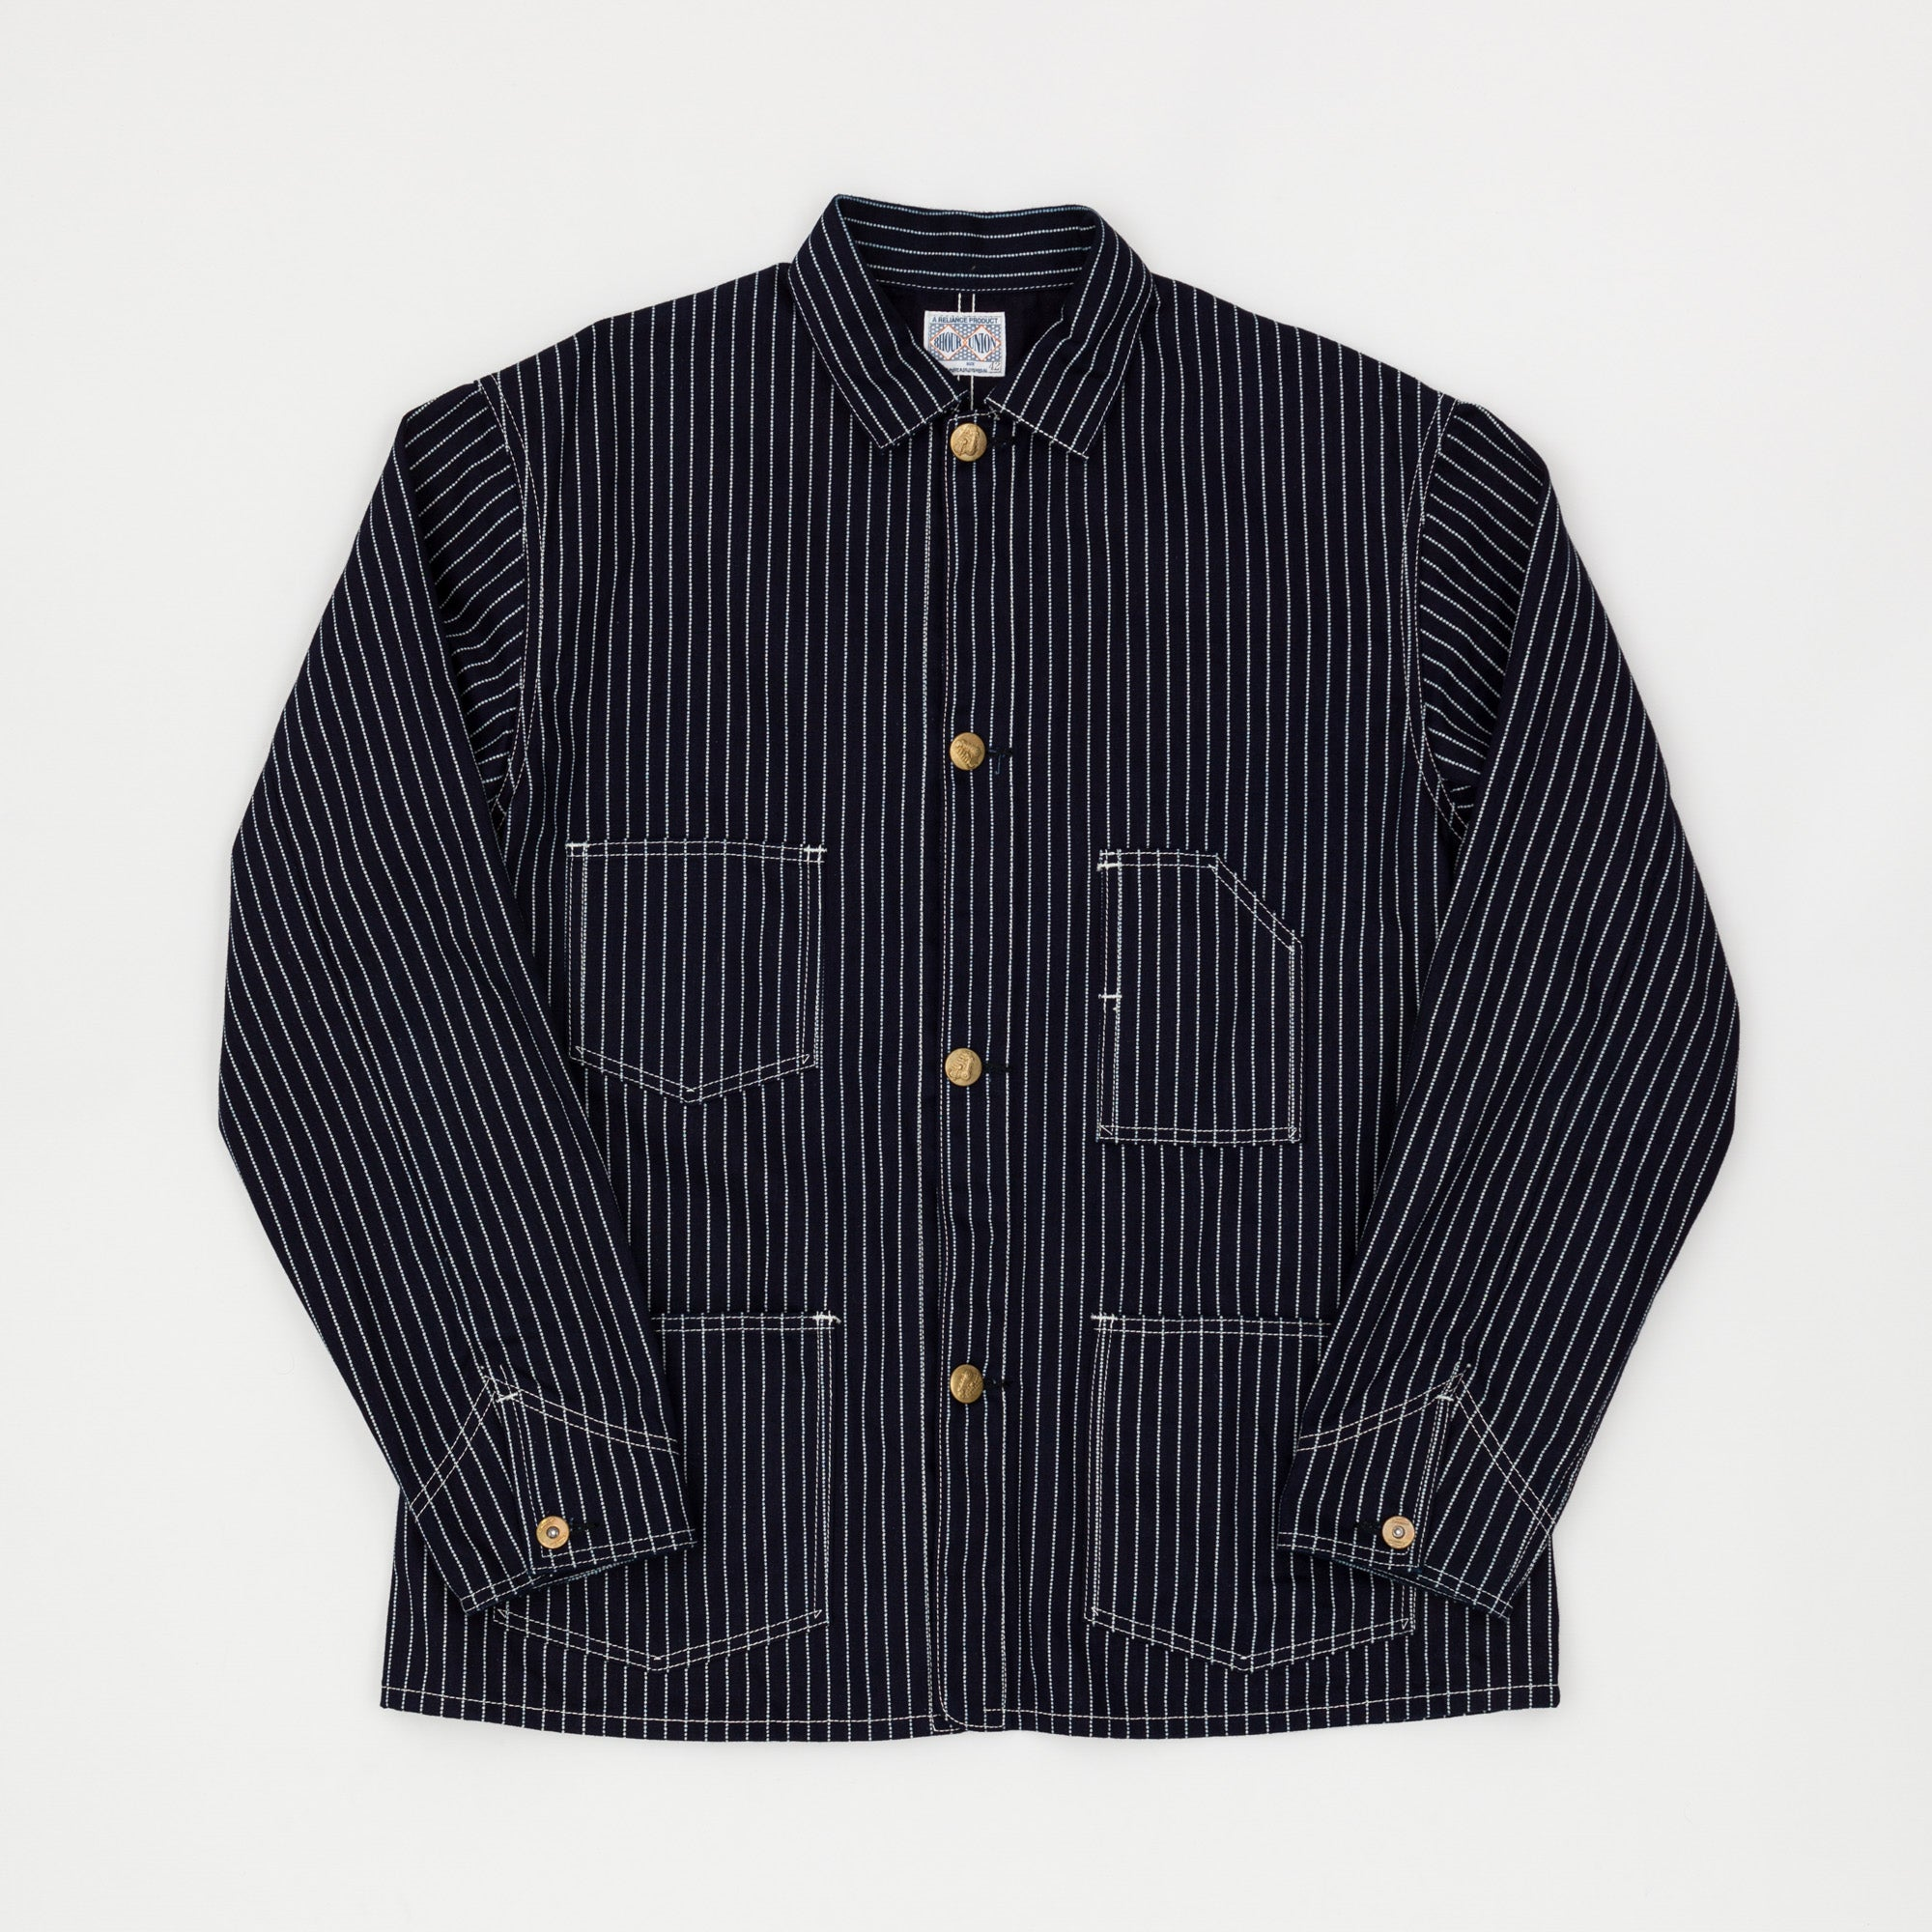 The Real McCoy's 8HU Indigo Wabash Stripe Work Coat